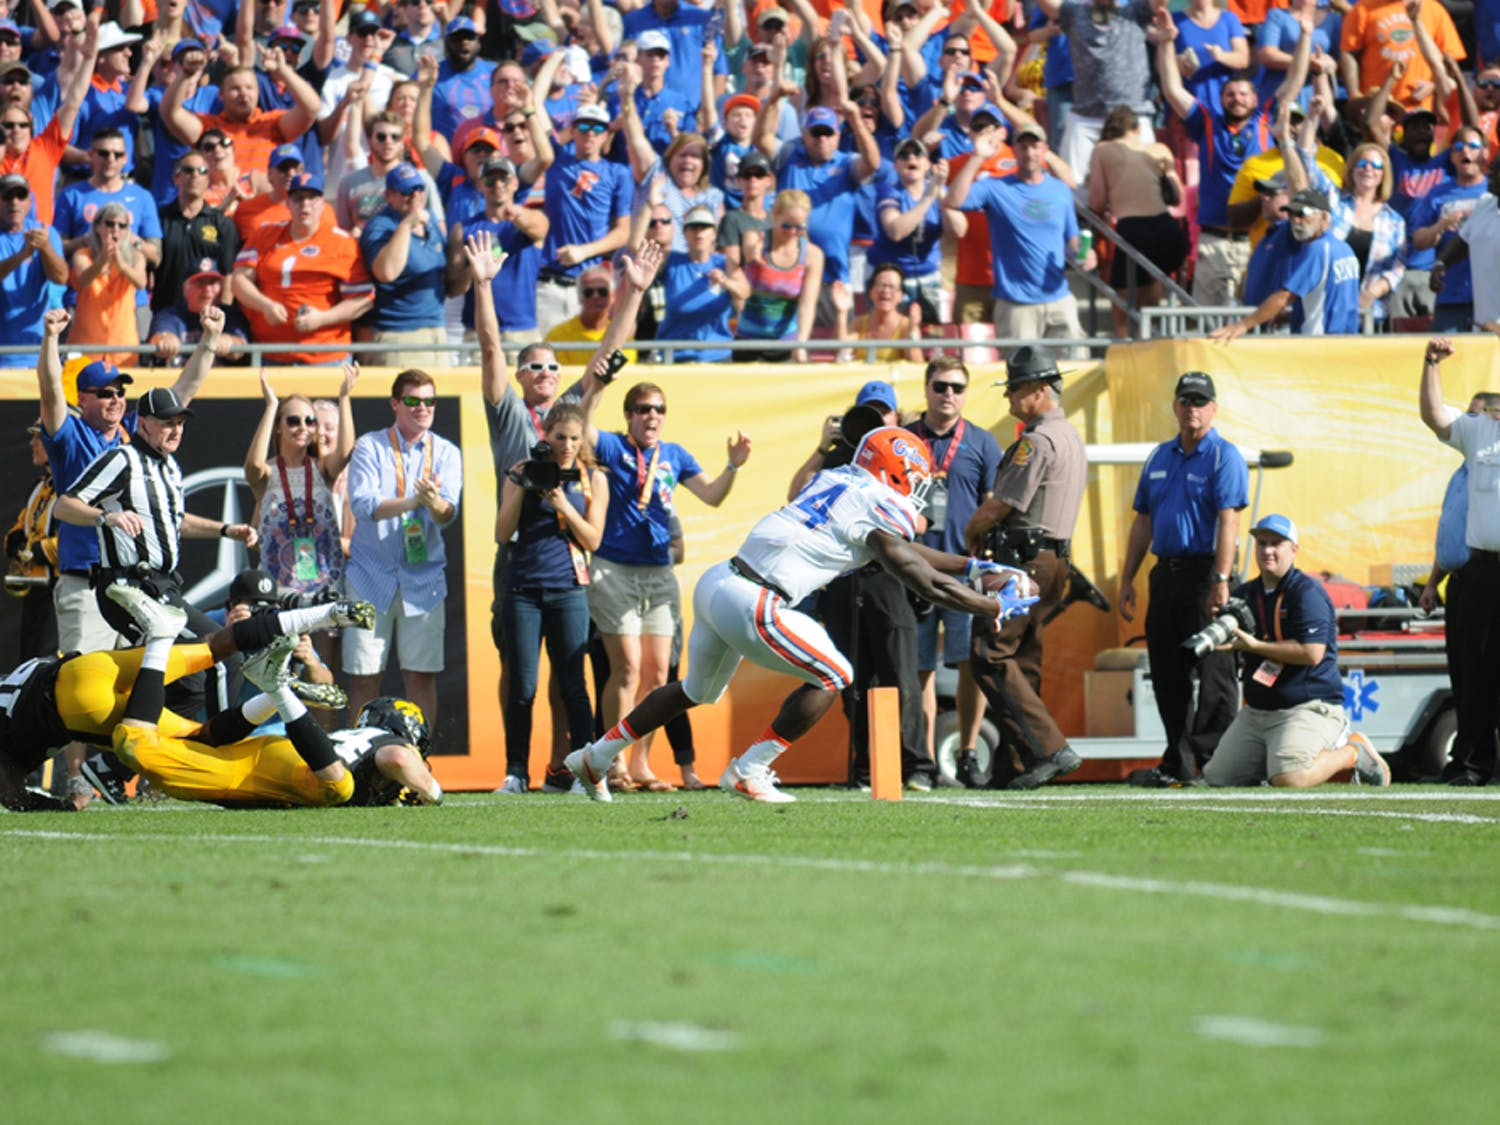 Mark Thompson dives for the end zone to cap an 85-yard touchdown catch during Florida's 30-3 win over Iowa in the Outback Bowl.